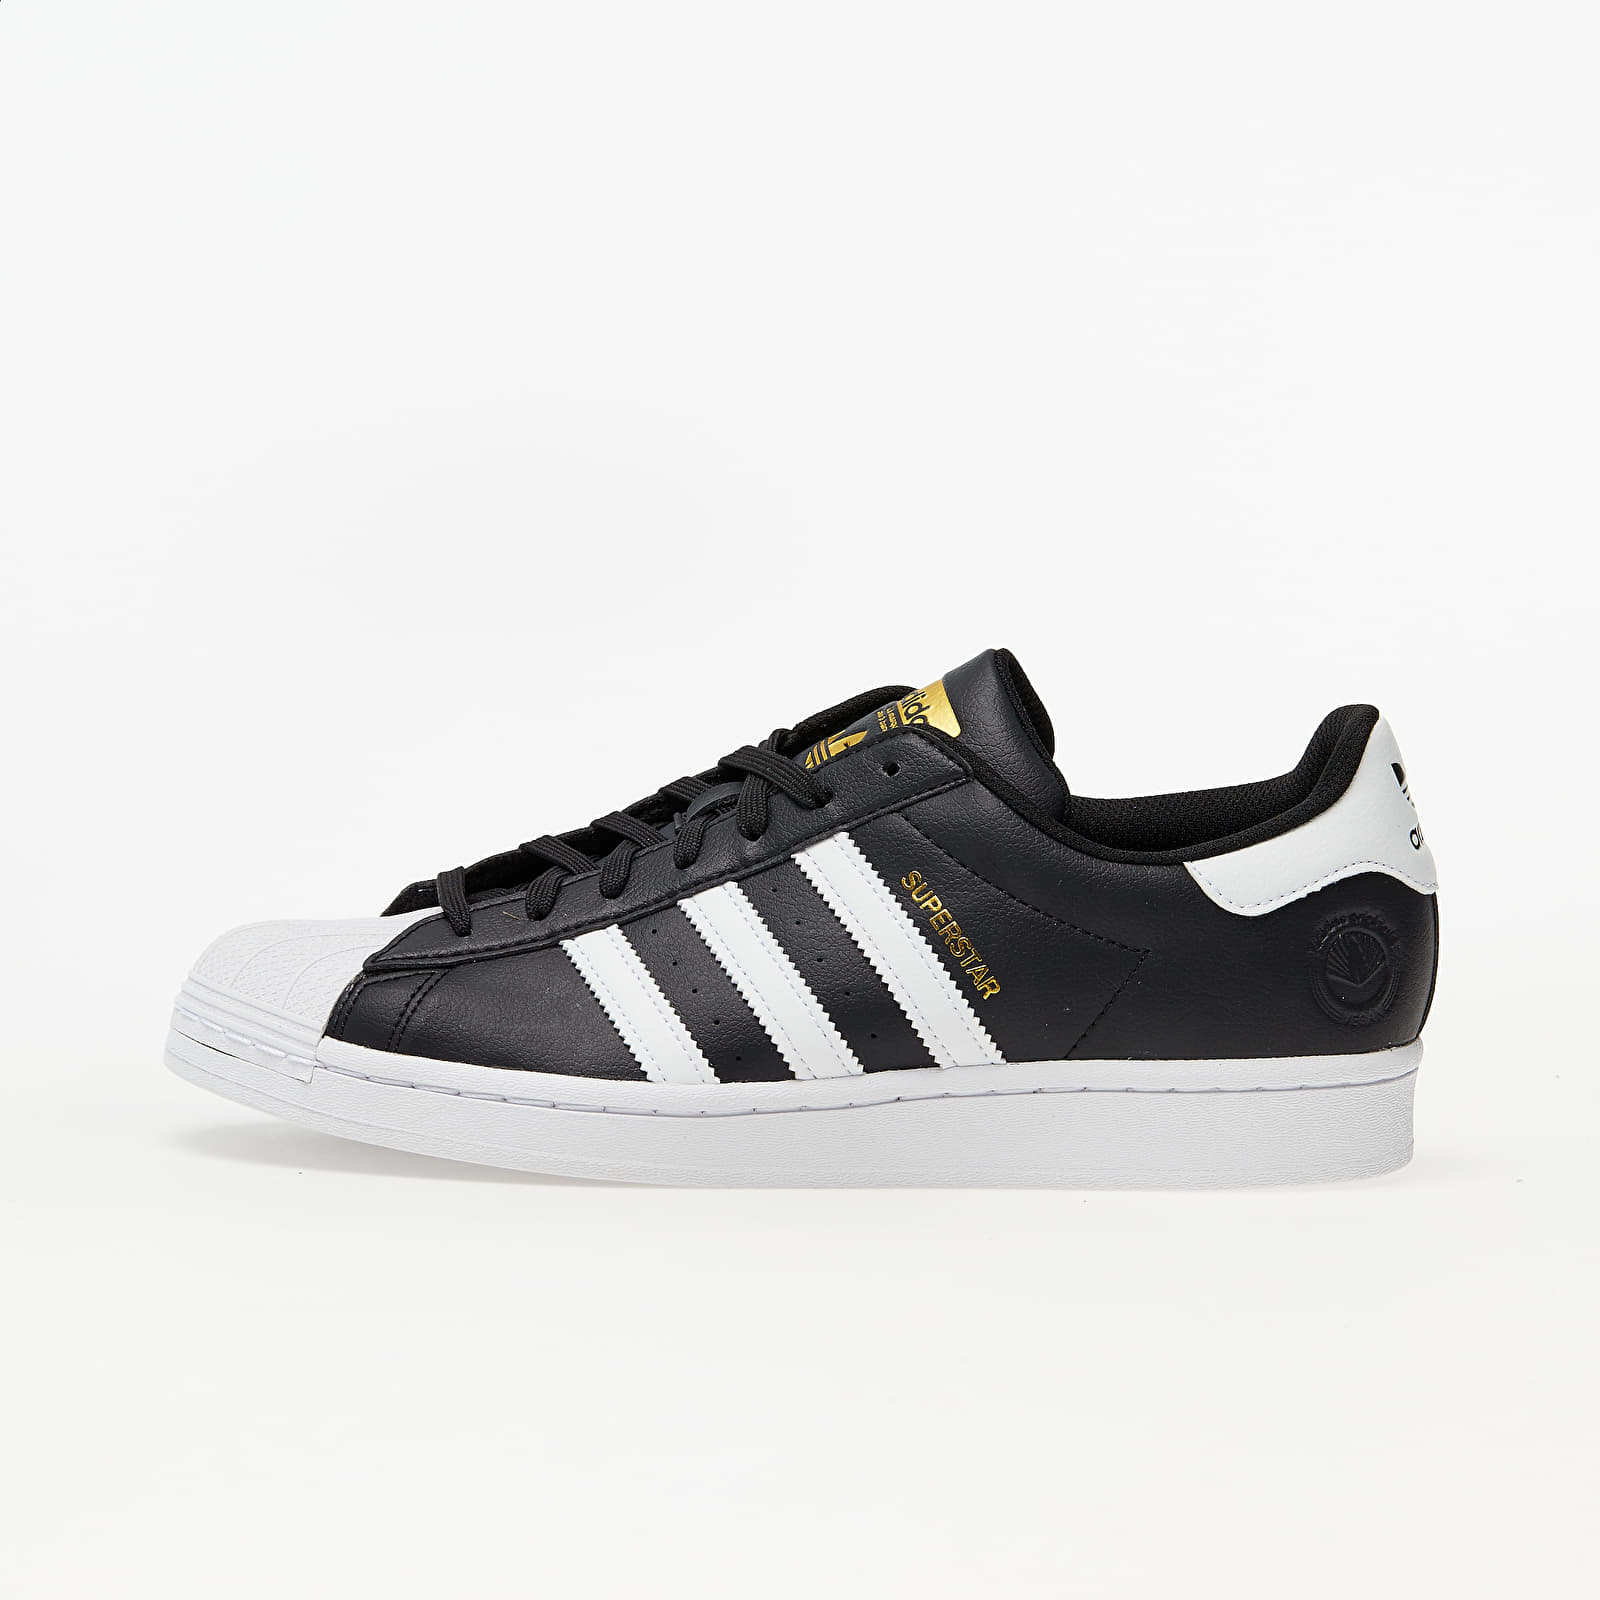 adidas Superstar Vegan Core Black/ Ftw White/ Gold Metalic EUR 38